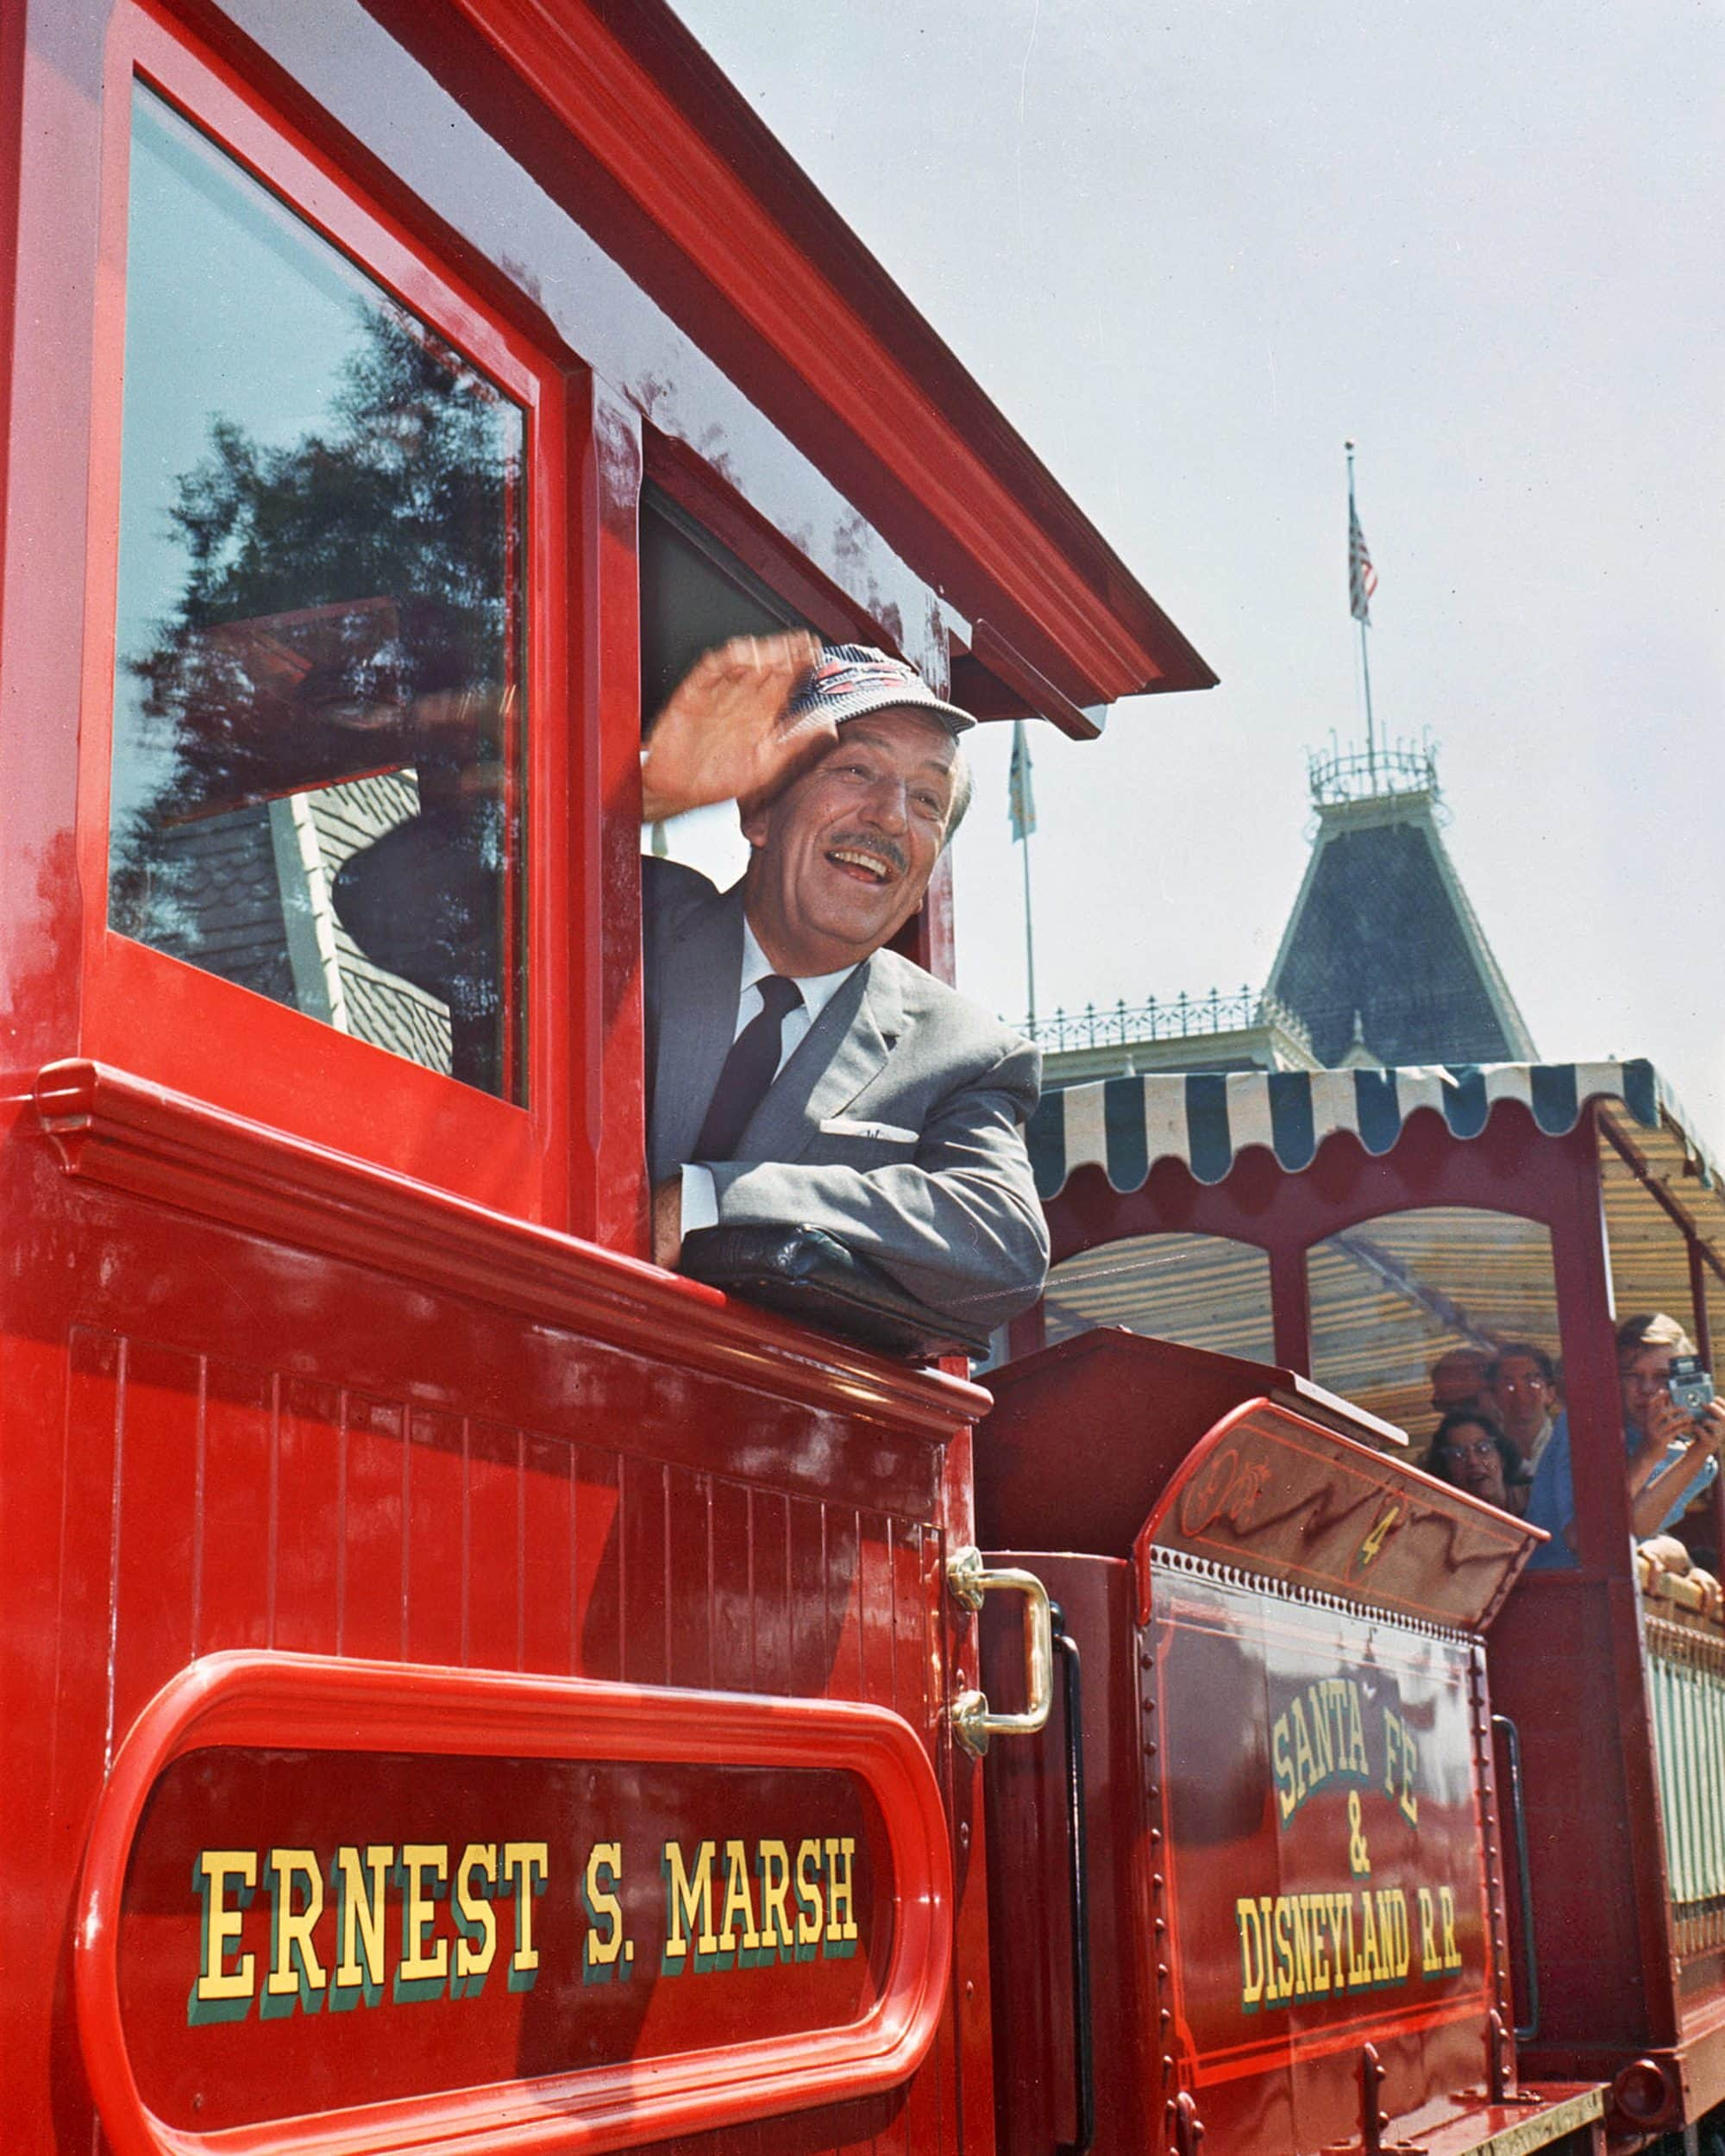 Learn more about Walt Disney and Disneyland on a special behind-the-scenes tour